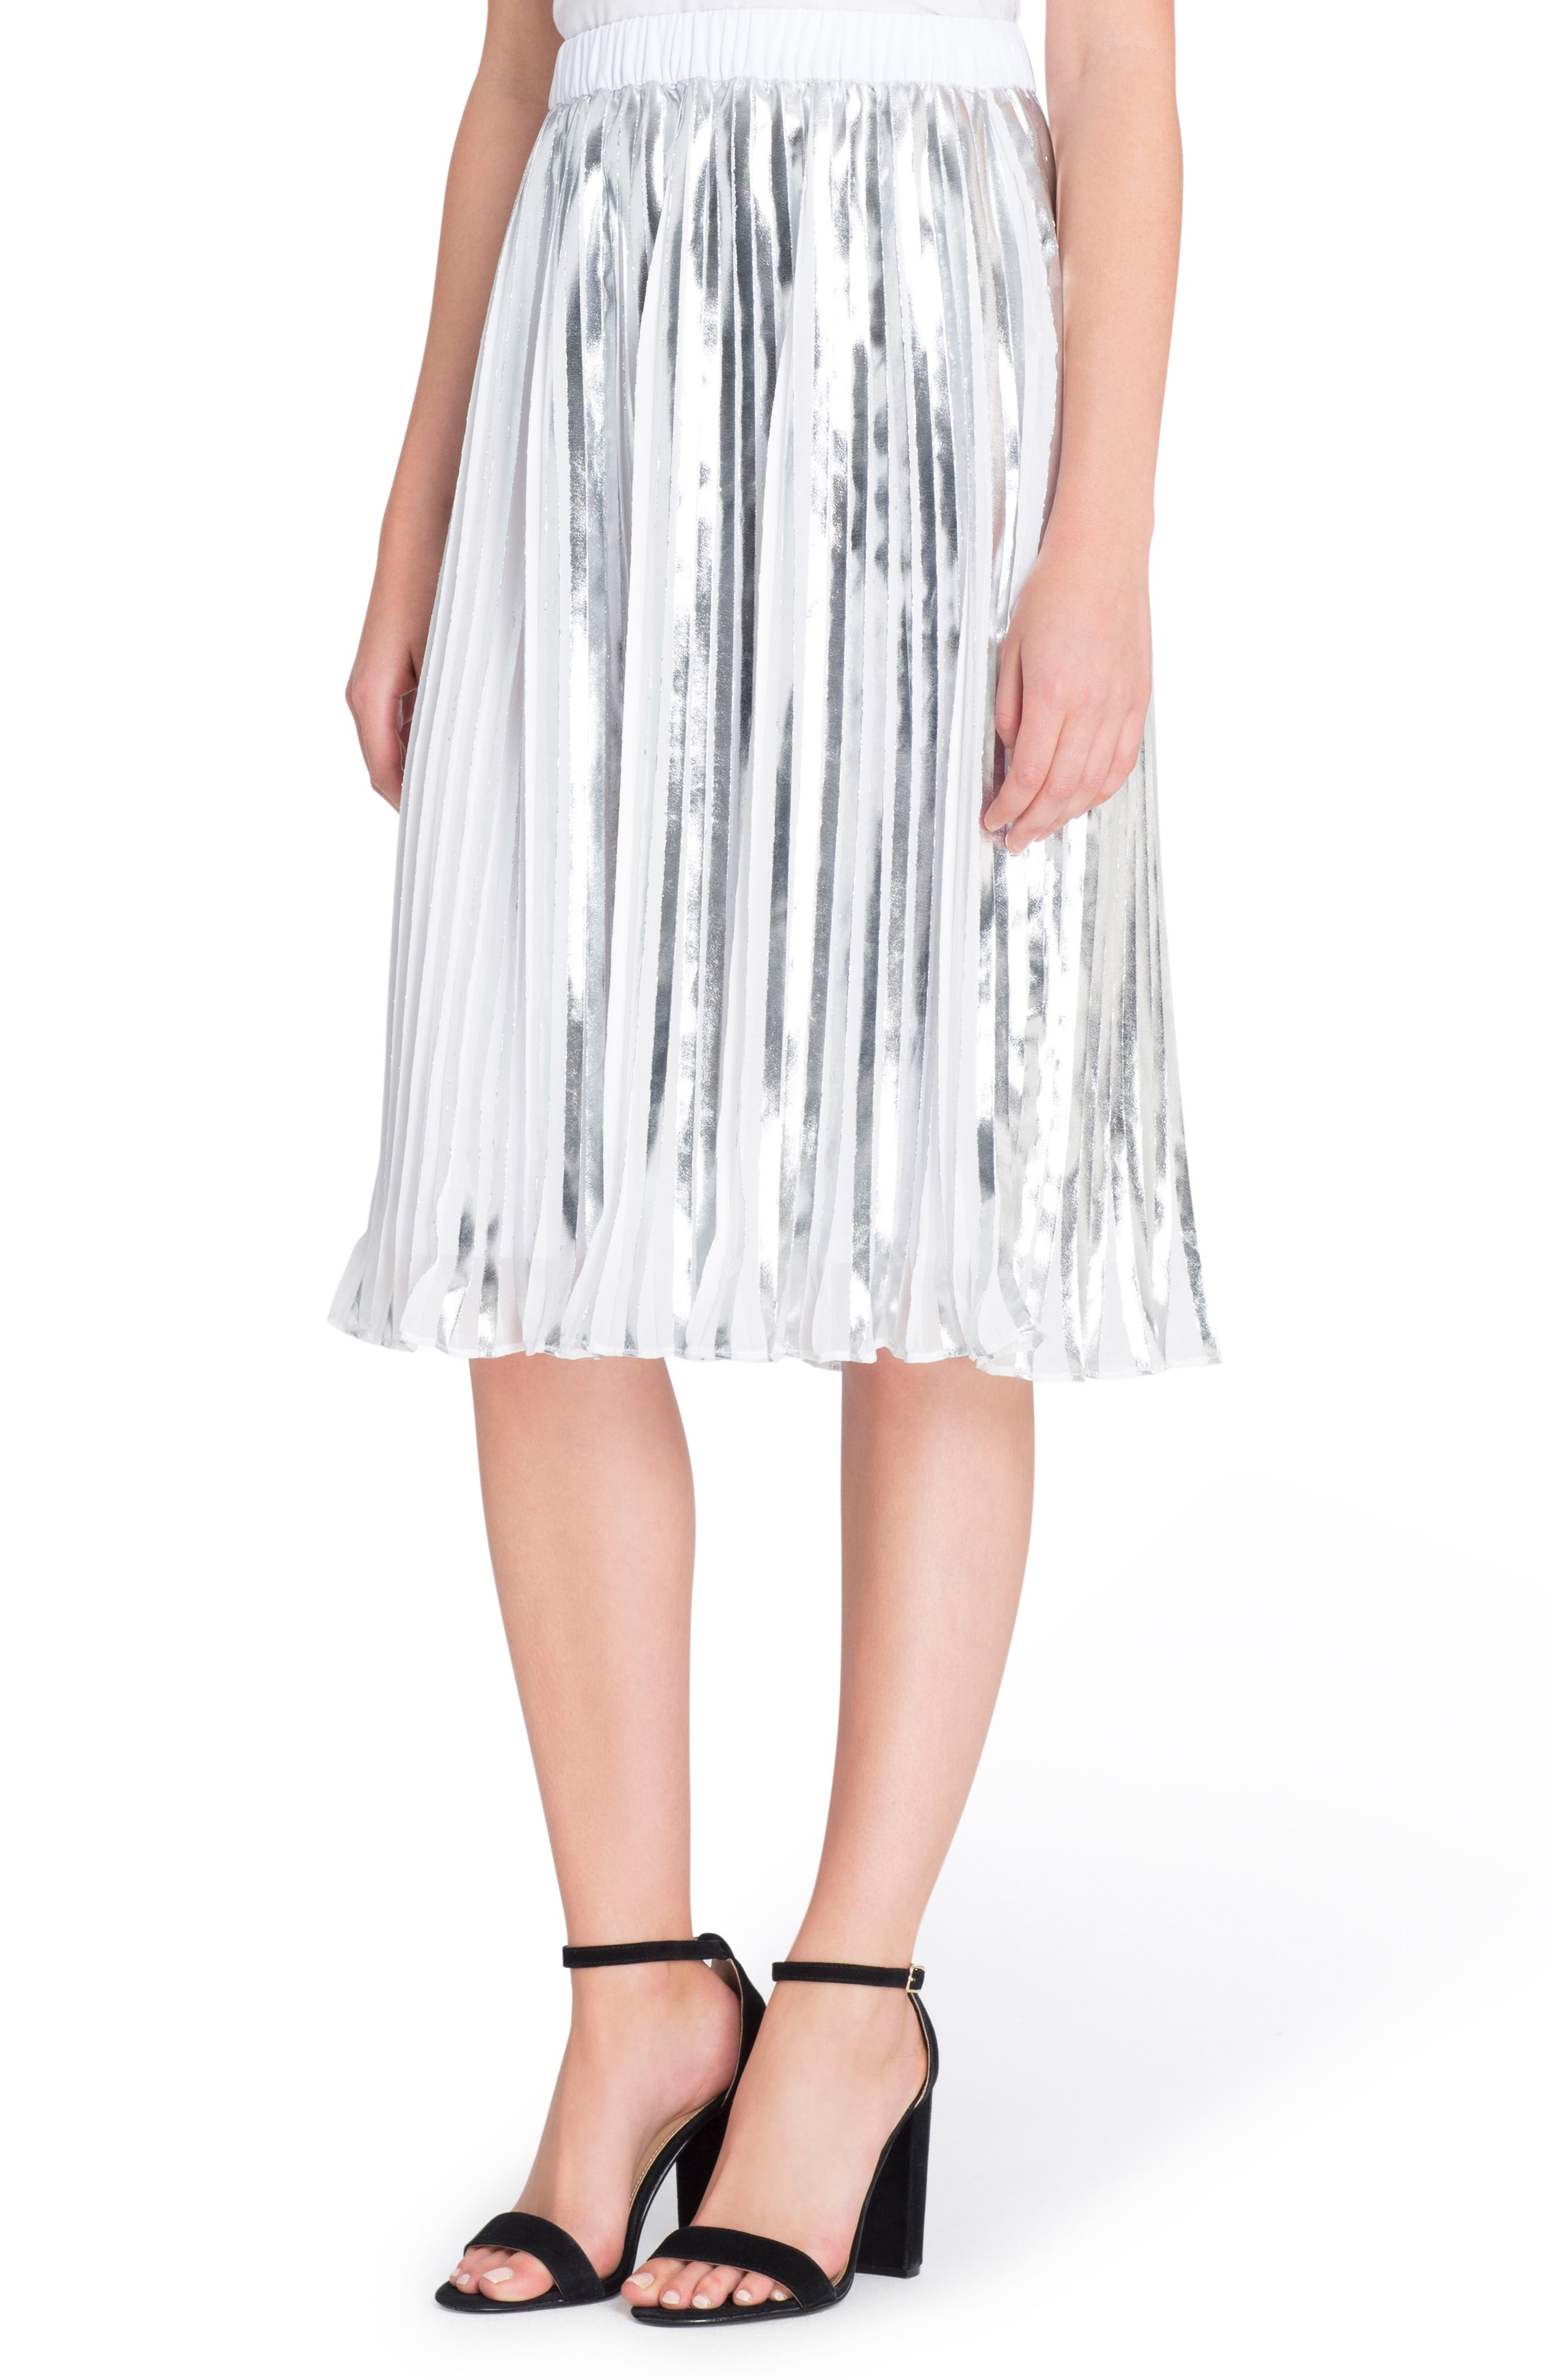 Duncan Pleat Skirt,                         Main,                         color, Silver/ White